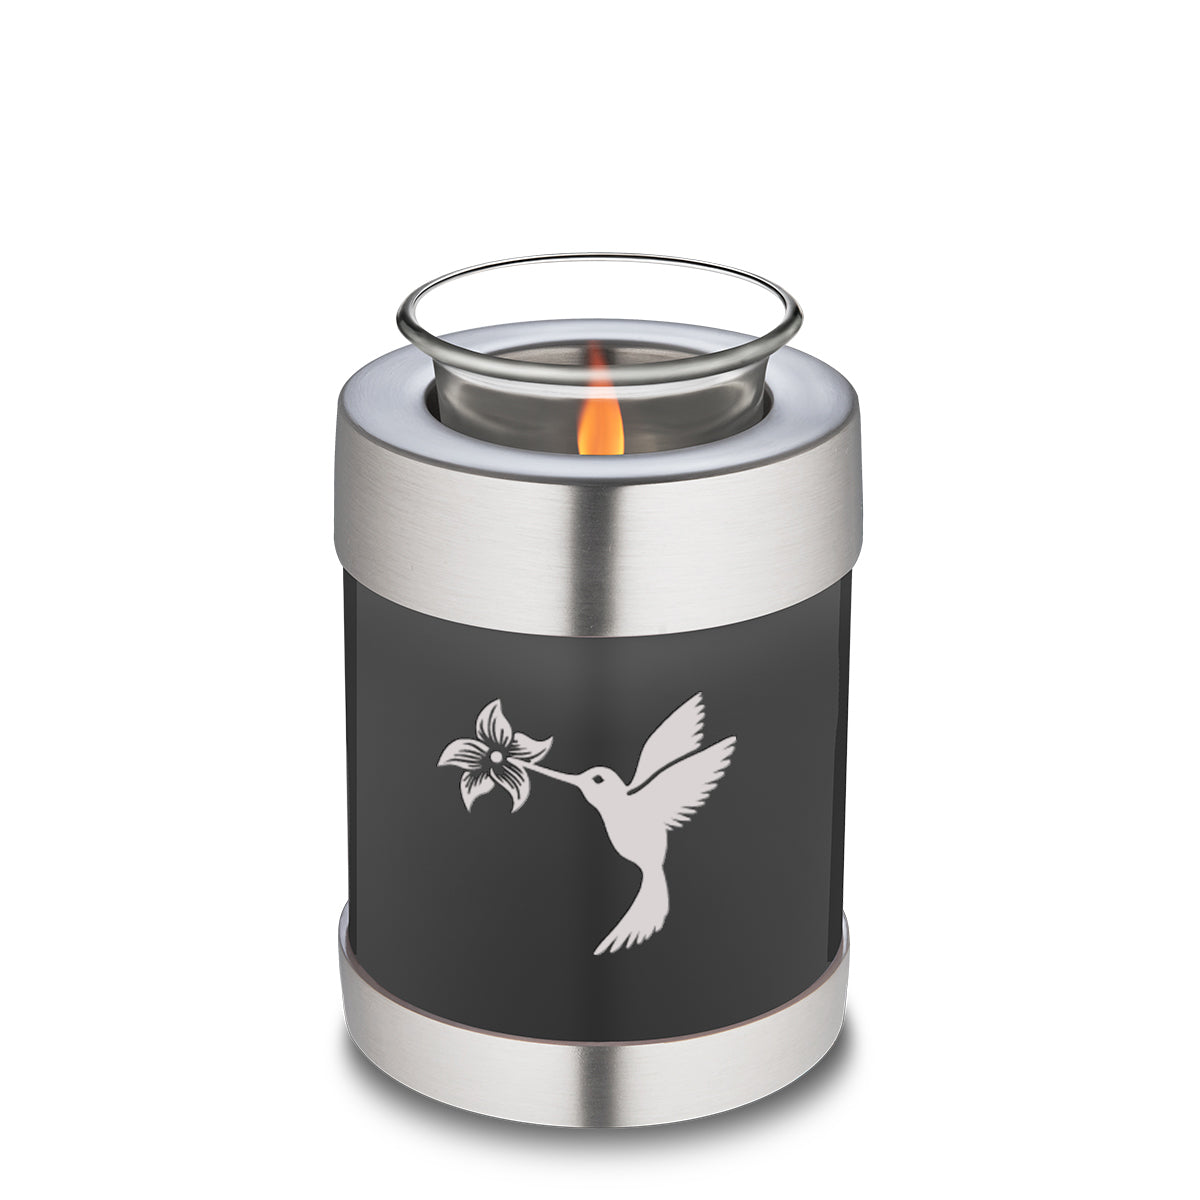 Candle Holder Embrace Hummingbird Charcoal Cremation Urn